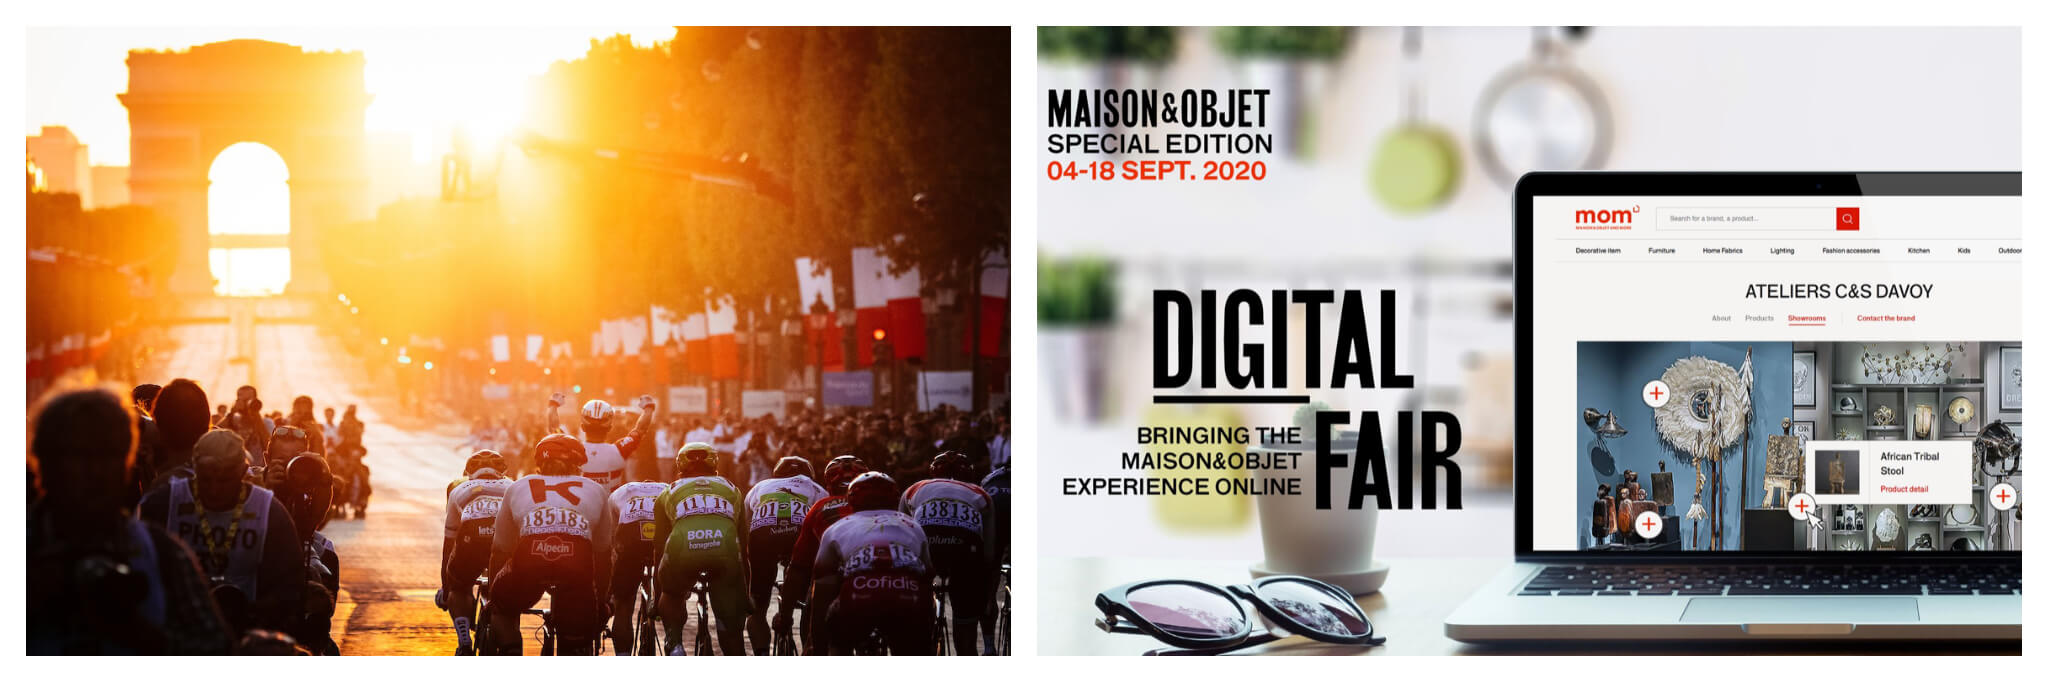 On the right there is a photo of the cyclist from the Tour de France heading towards the Arc de Triomphe at sunset. There are French flags lining the street to the right and crowds of spectators to the left. The photo on the right is an advert for the Maison and Objet Special Edition from 4-18 September 2020. In the foreground there is a laptop on the right and the text 'Digital Fair to the left of that with a pair of sunglasses underneath. This is set on a kitchen countertop.